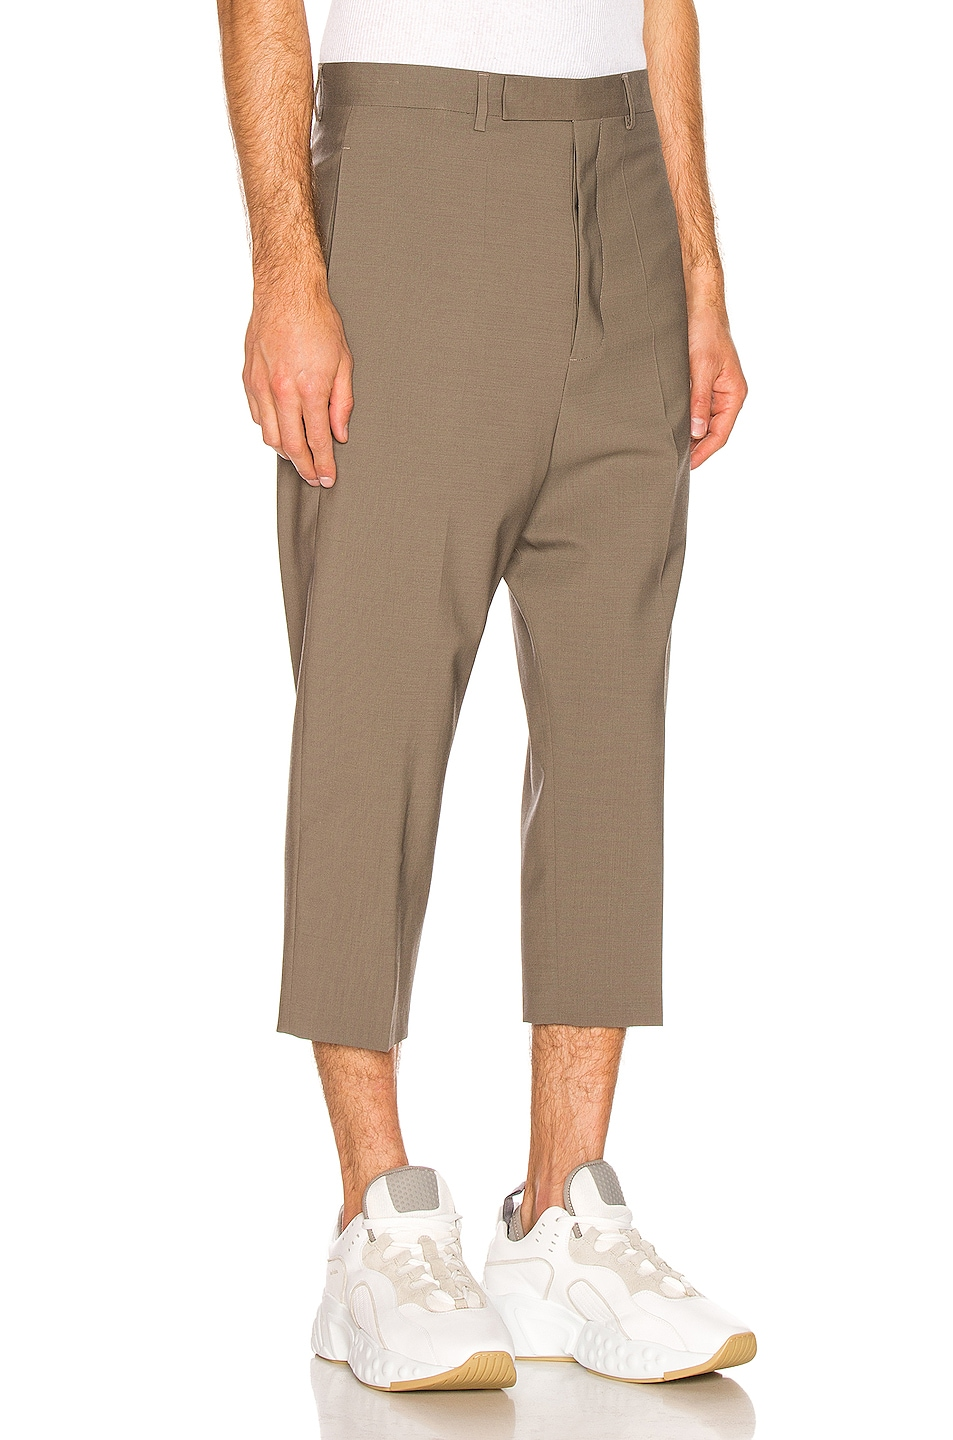 Image 2 of Rick Owens Cropped Astaire Trouser in Dust